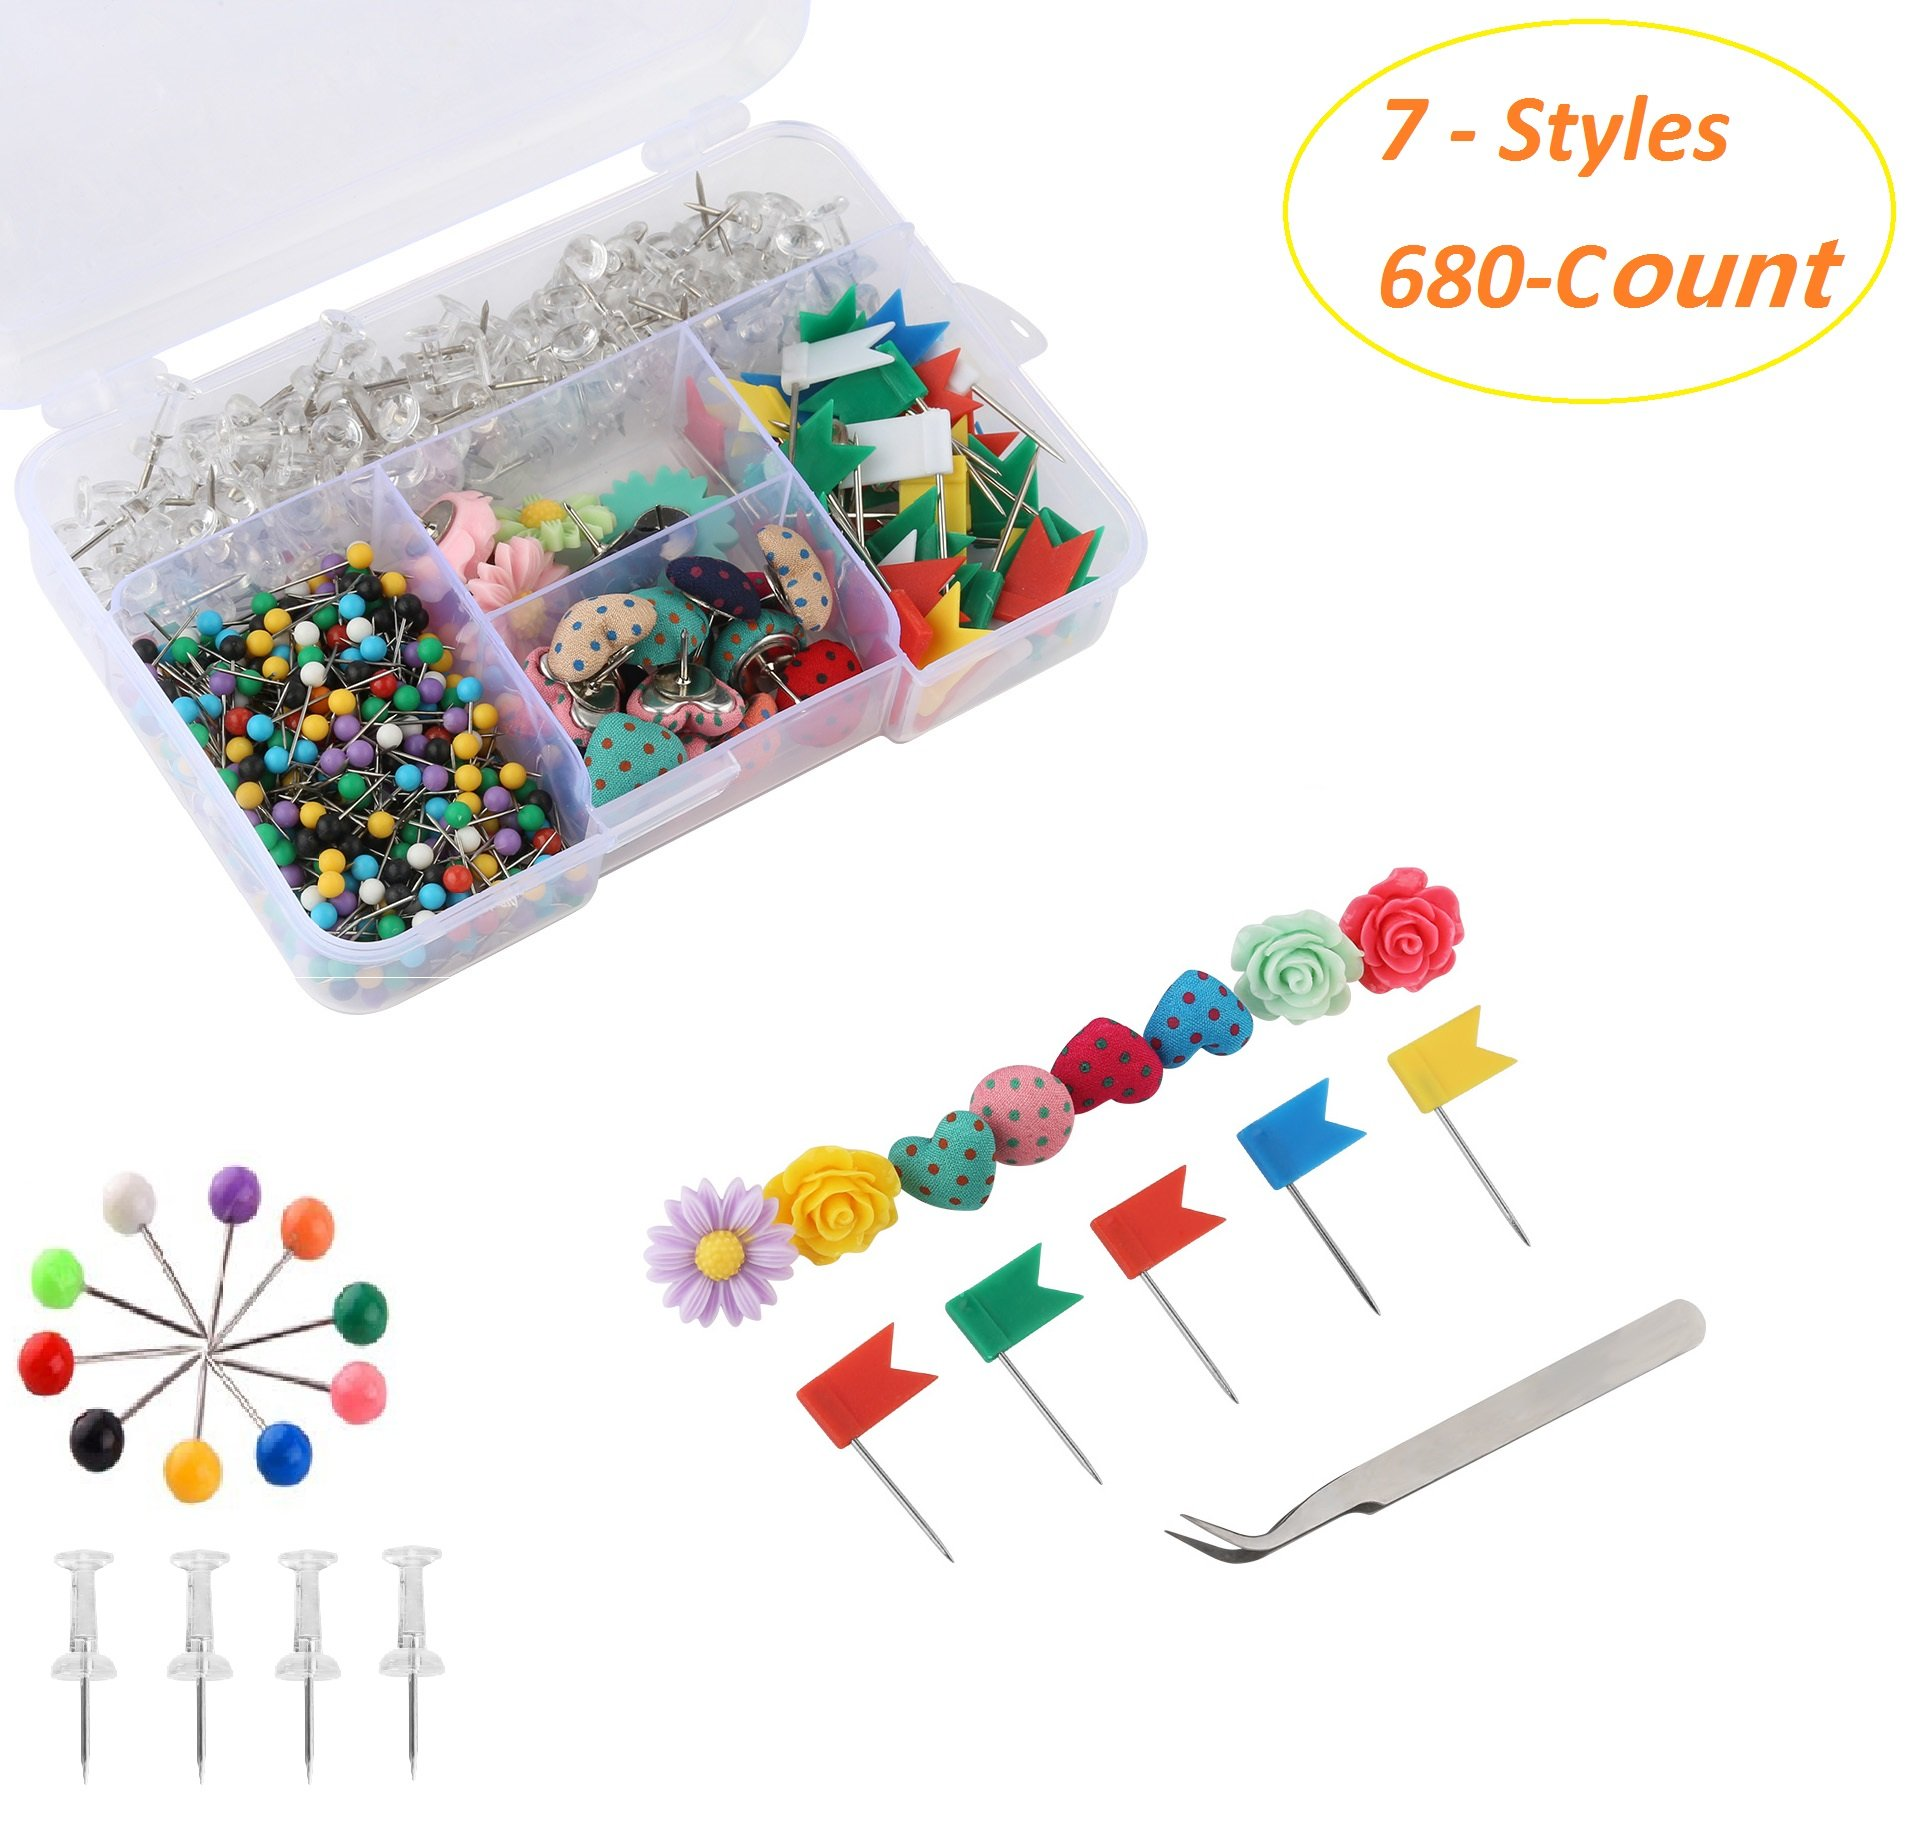 Office & School Supplies 80pcs Colorful Transparent Push Pins Clear Plastic Mini Thumb Tacks In Reusable Acrylic Box For Office Home Boards Decoration High Quality